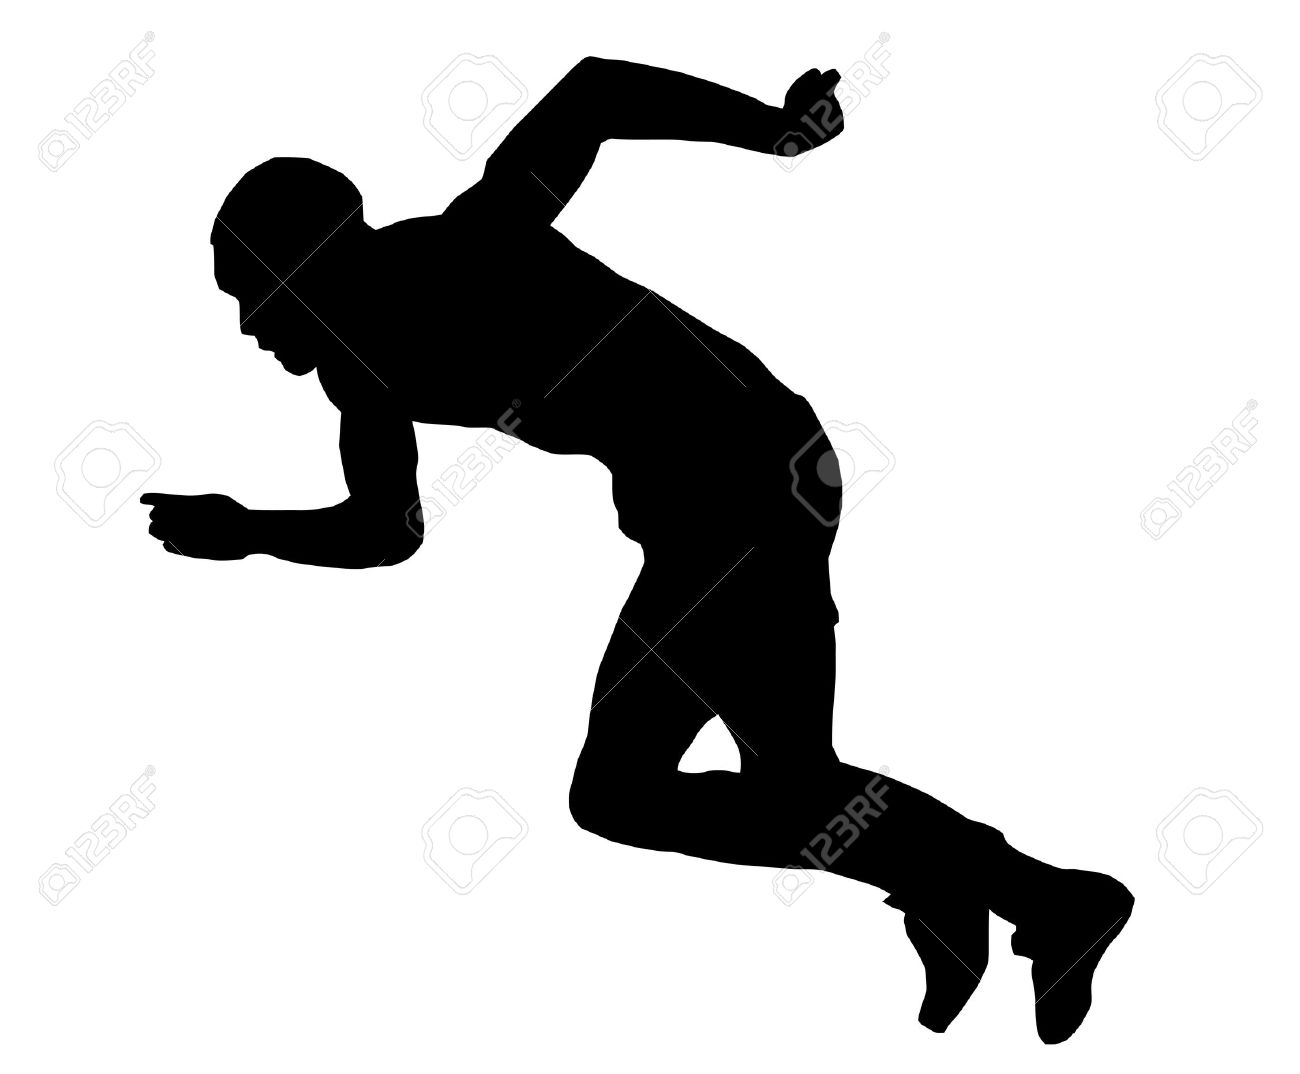 athlete clipart black and white - Clipground